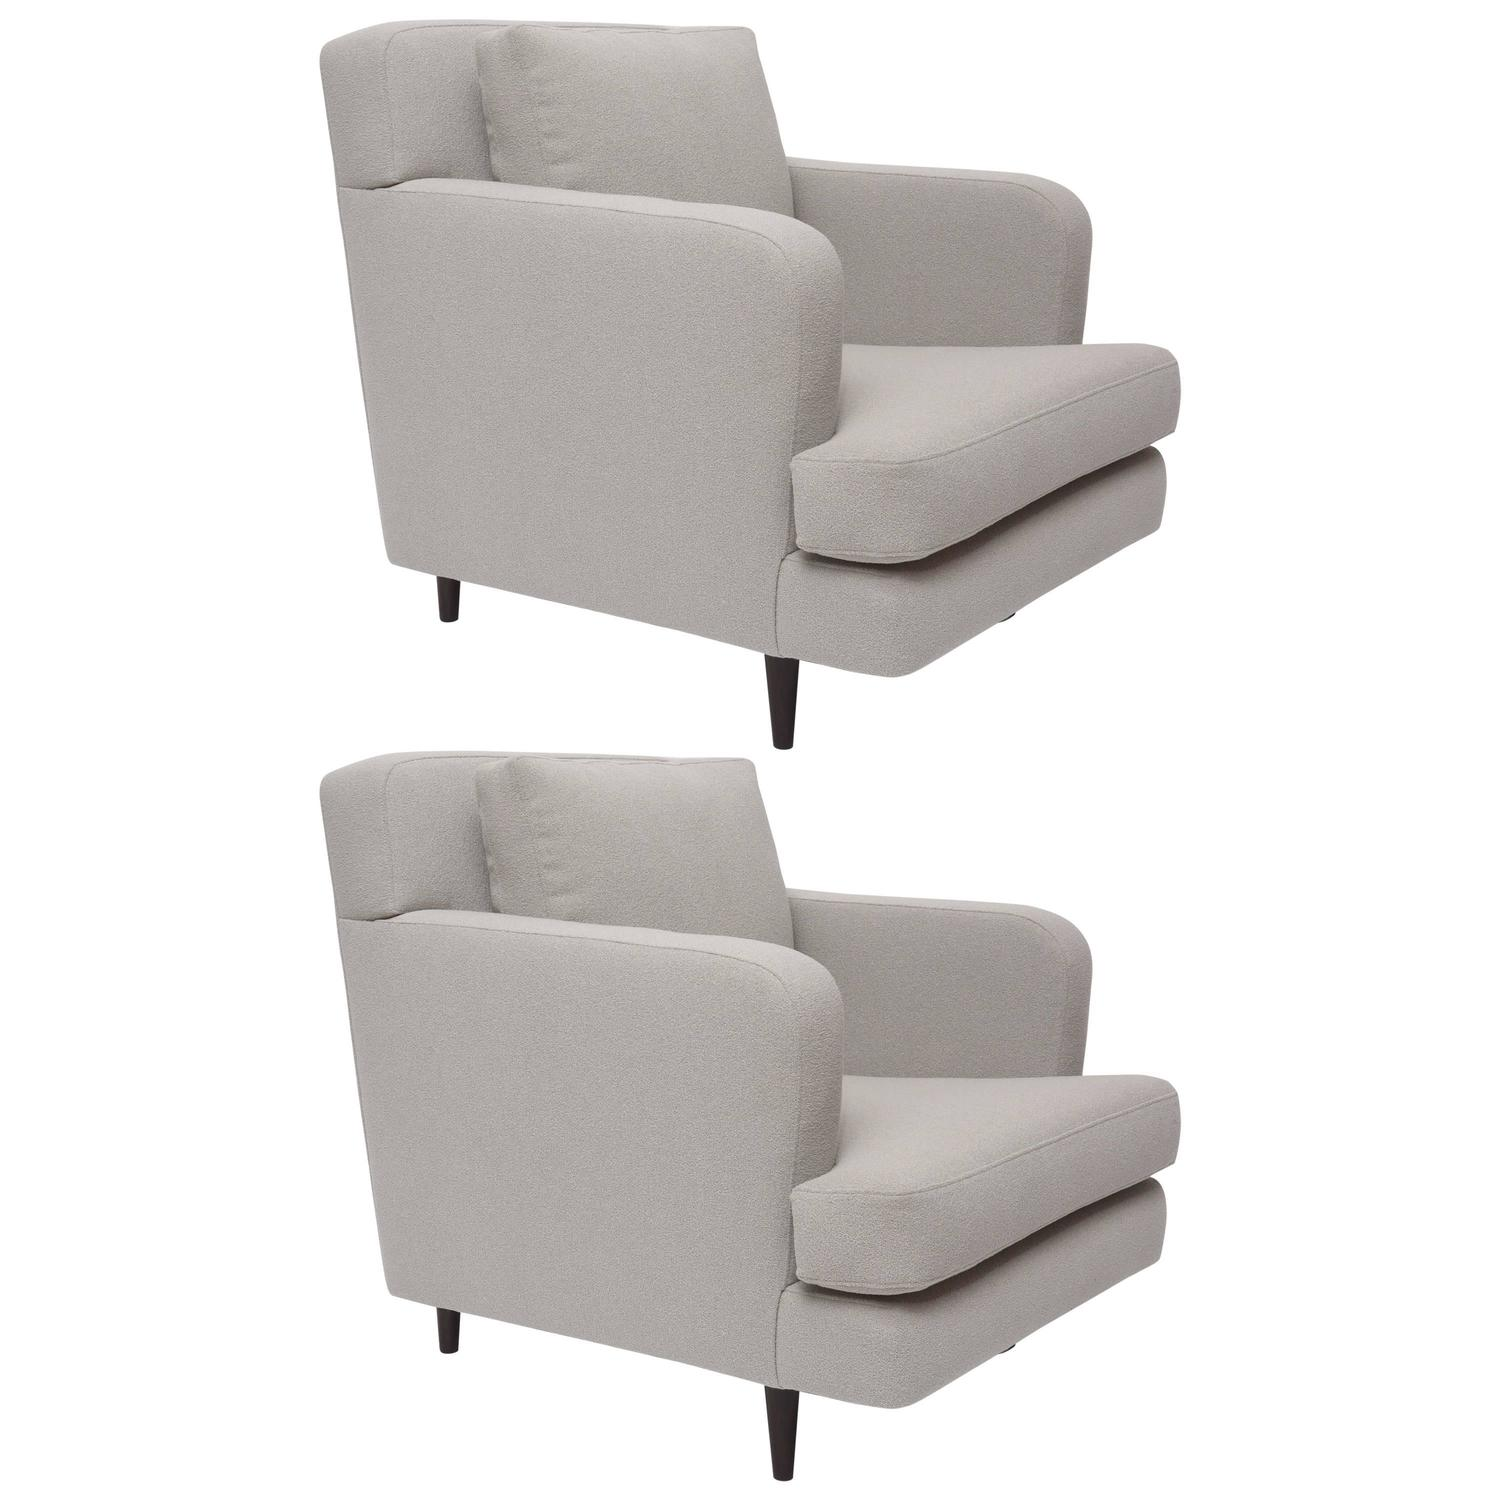 Pair of edward wormley 5683 lounge chairs for dunbar at 1stdibs